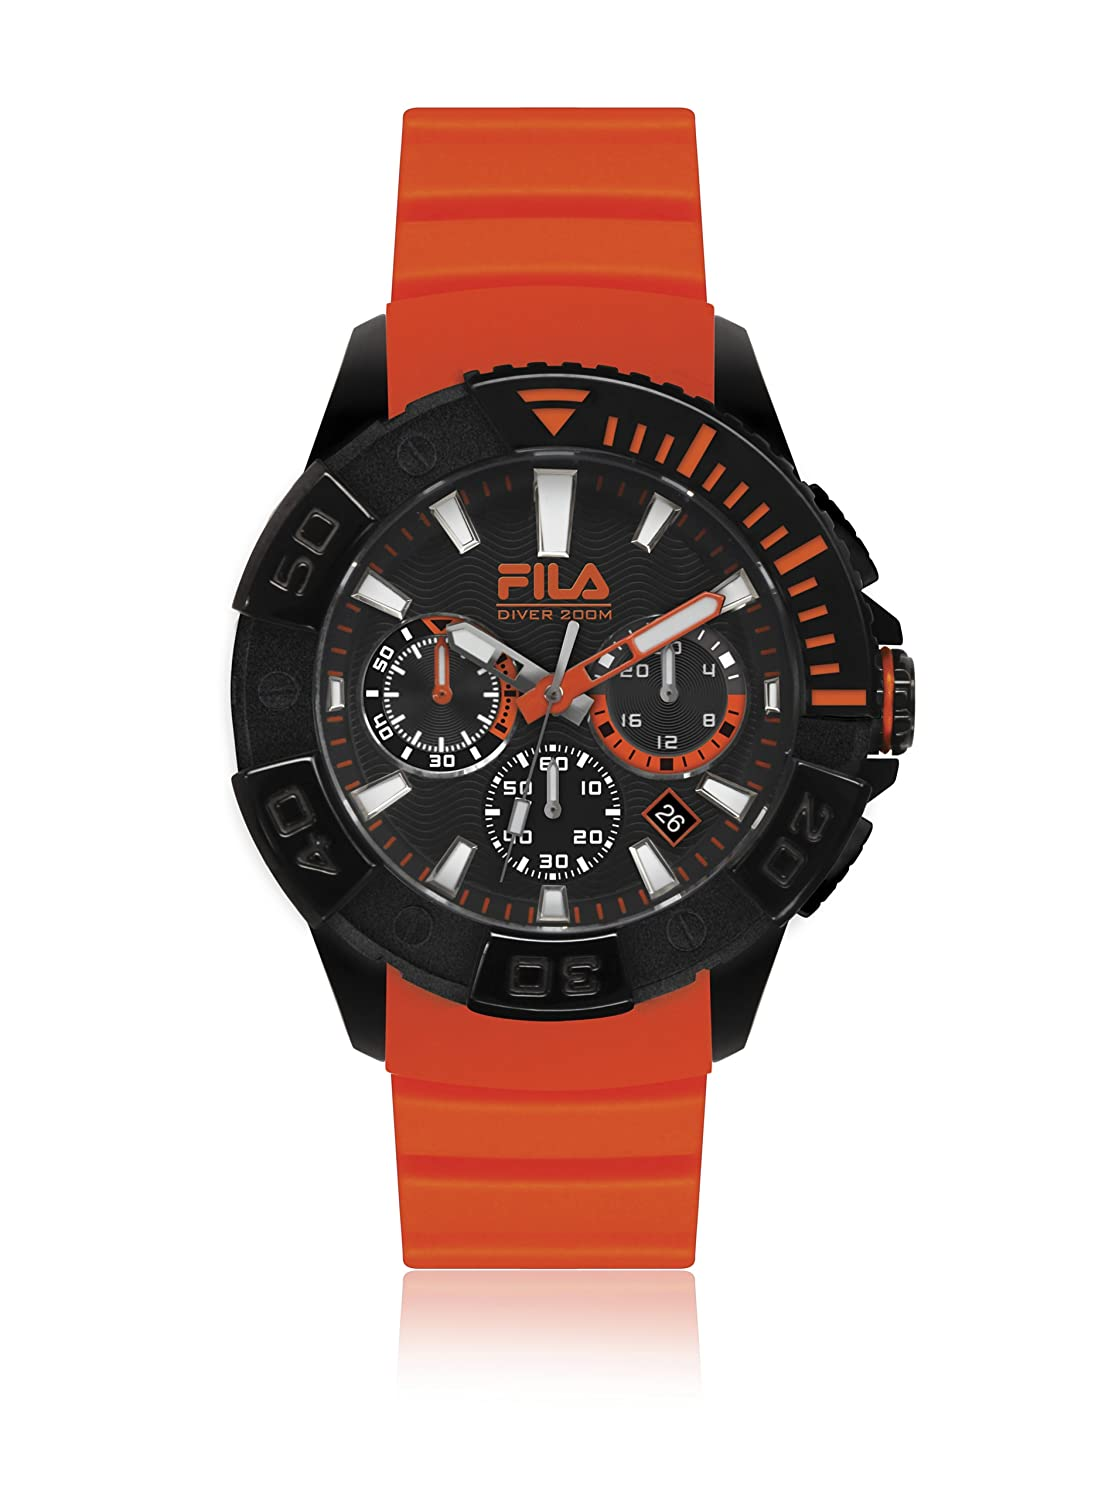 Fila Diving Orange Analog Dial Men's Chronograph Watch - 38-040-002